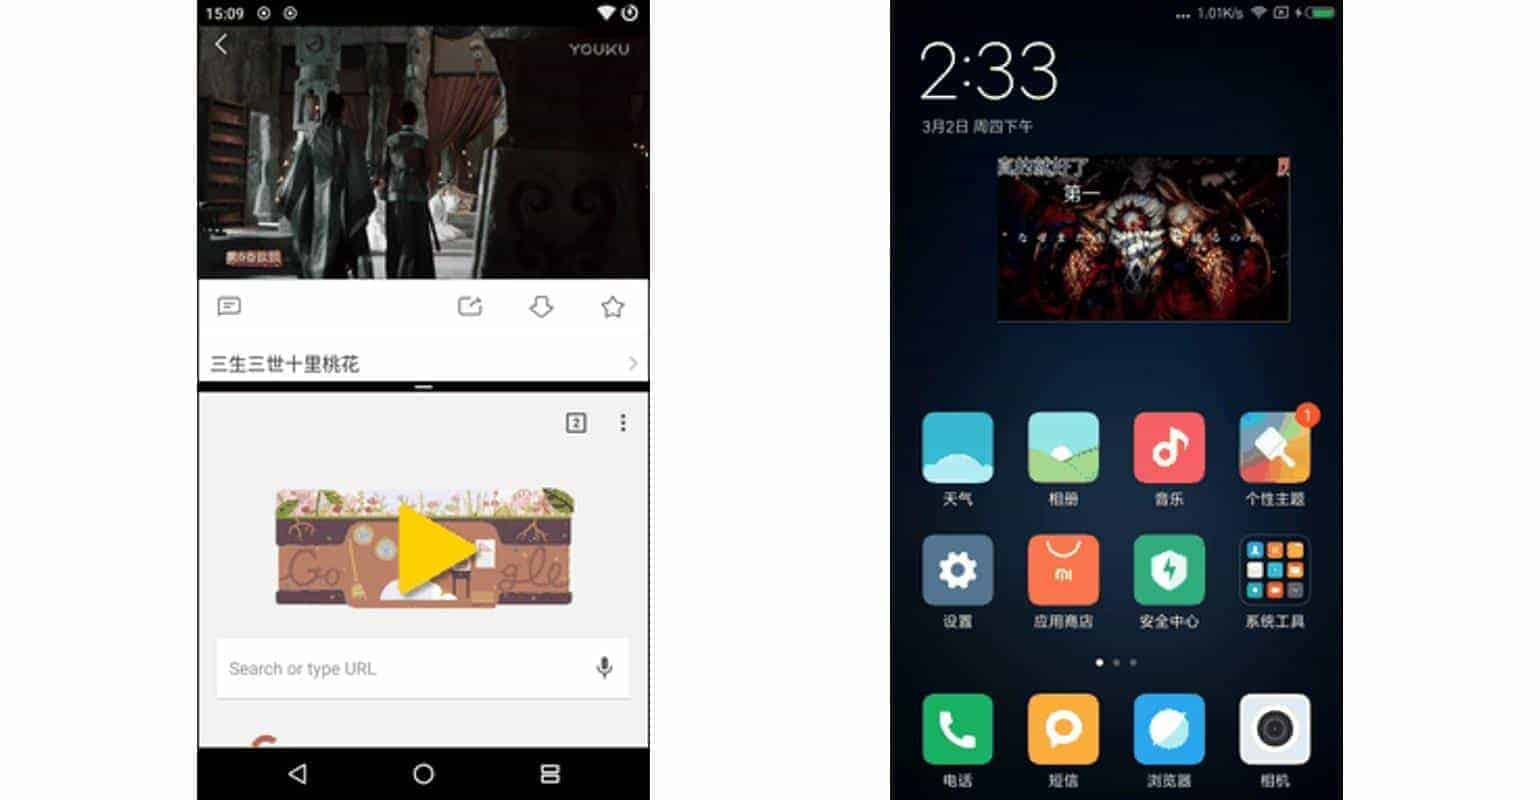 MIUI 9 features gelekt- split screen en picture-in-picture